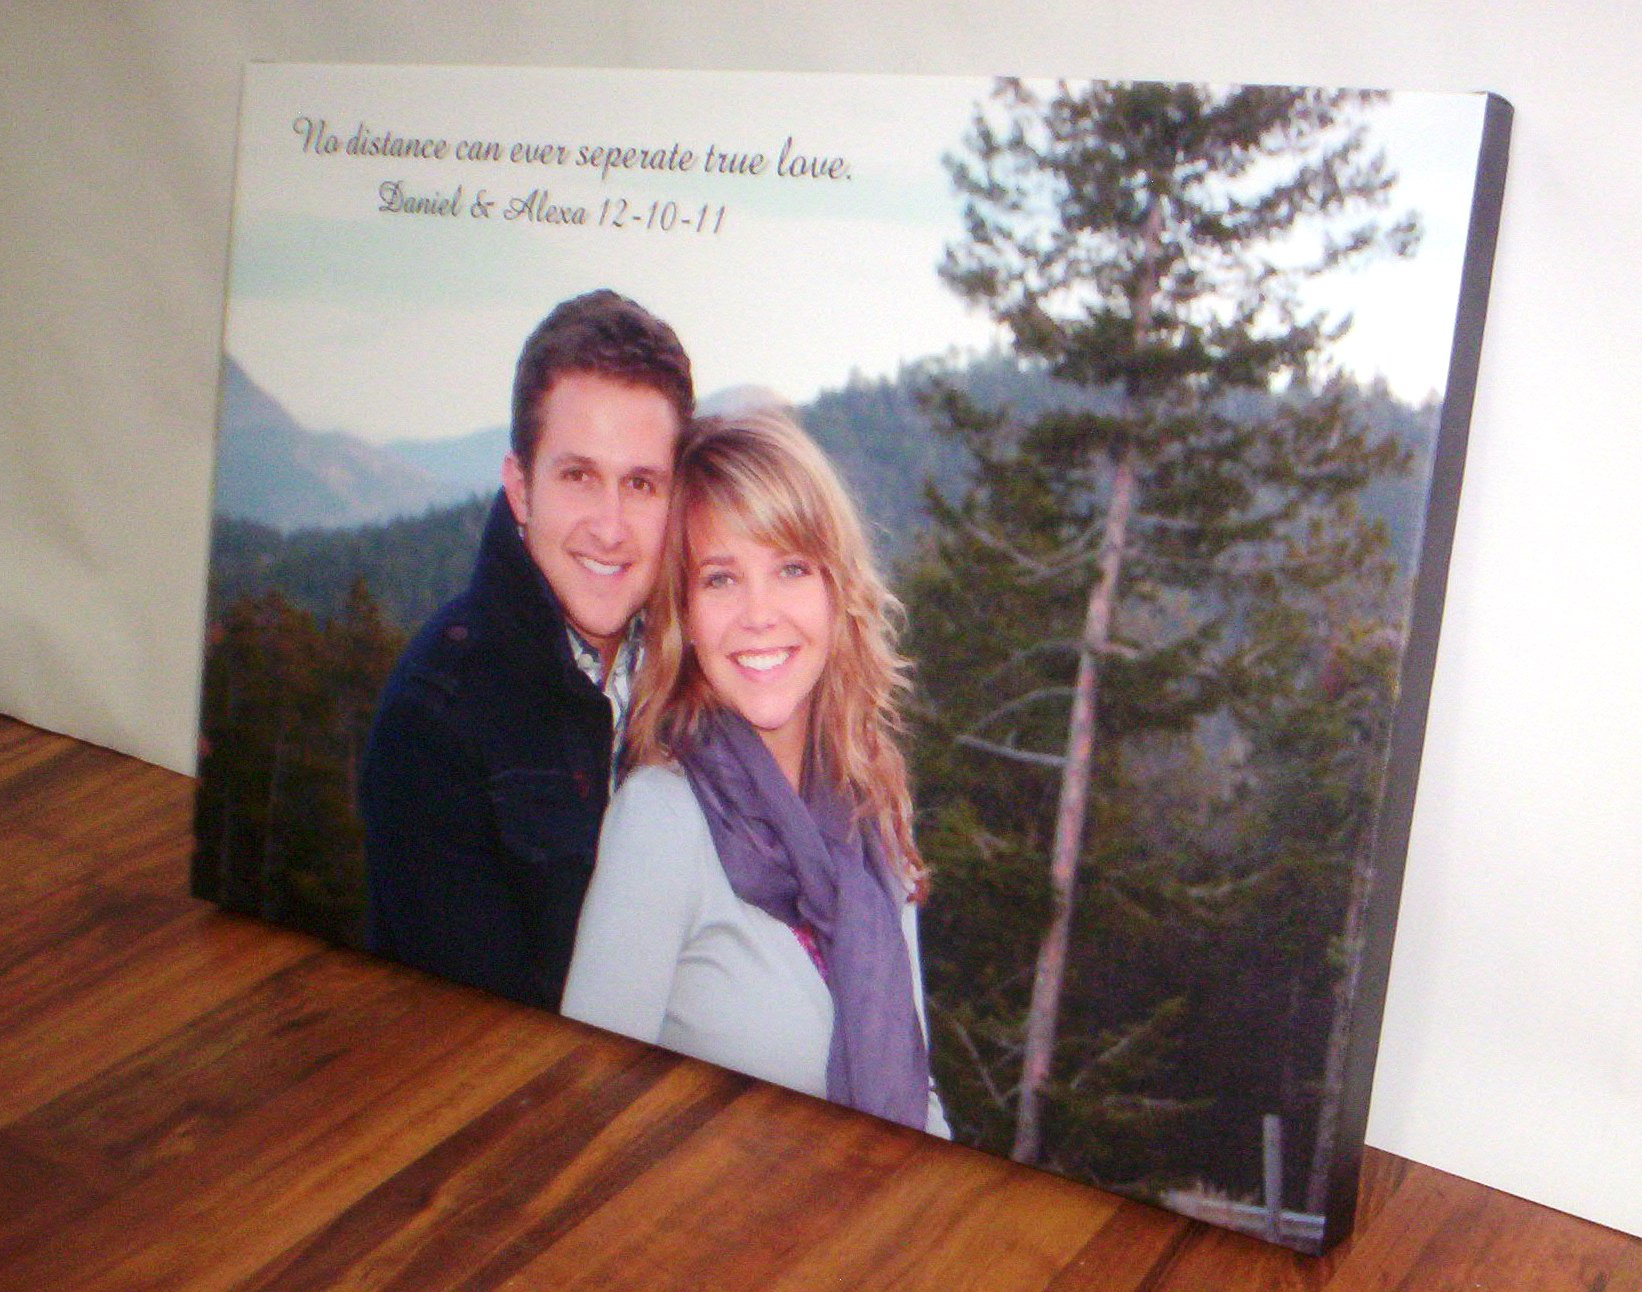 Wedding Present - Canvas Wall Art from SignMax